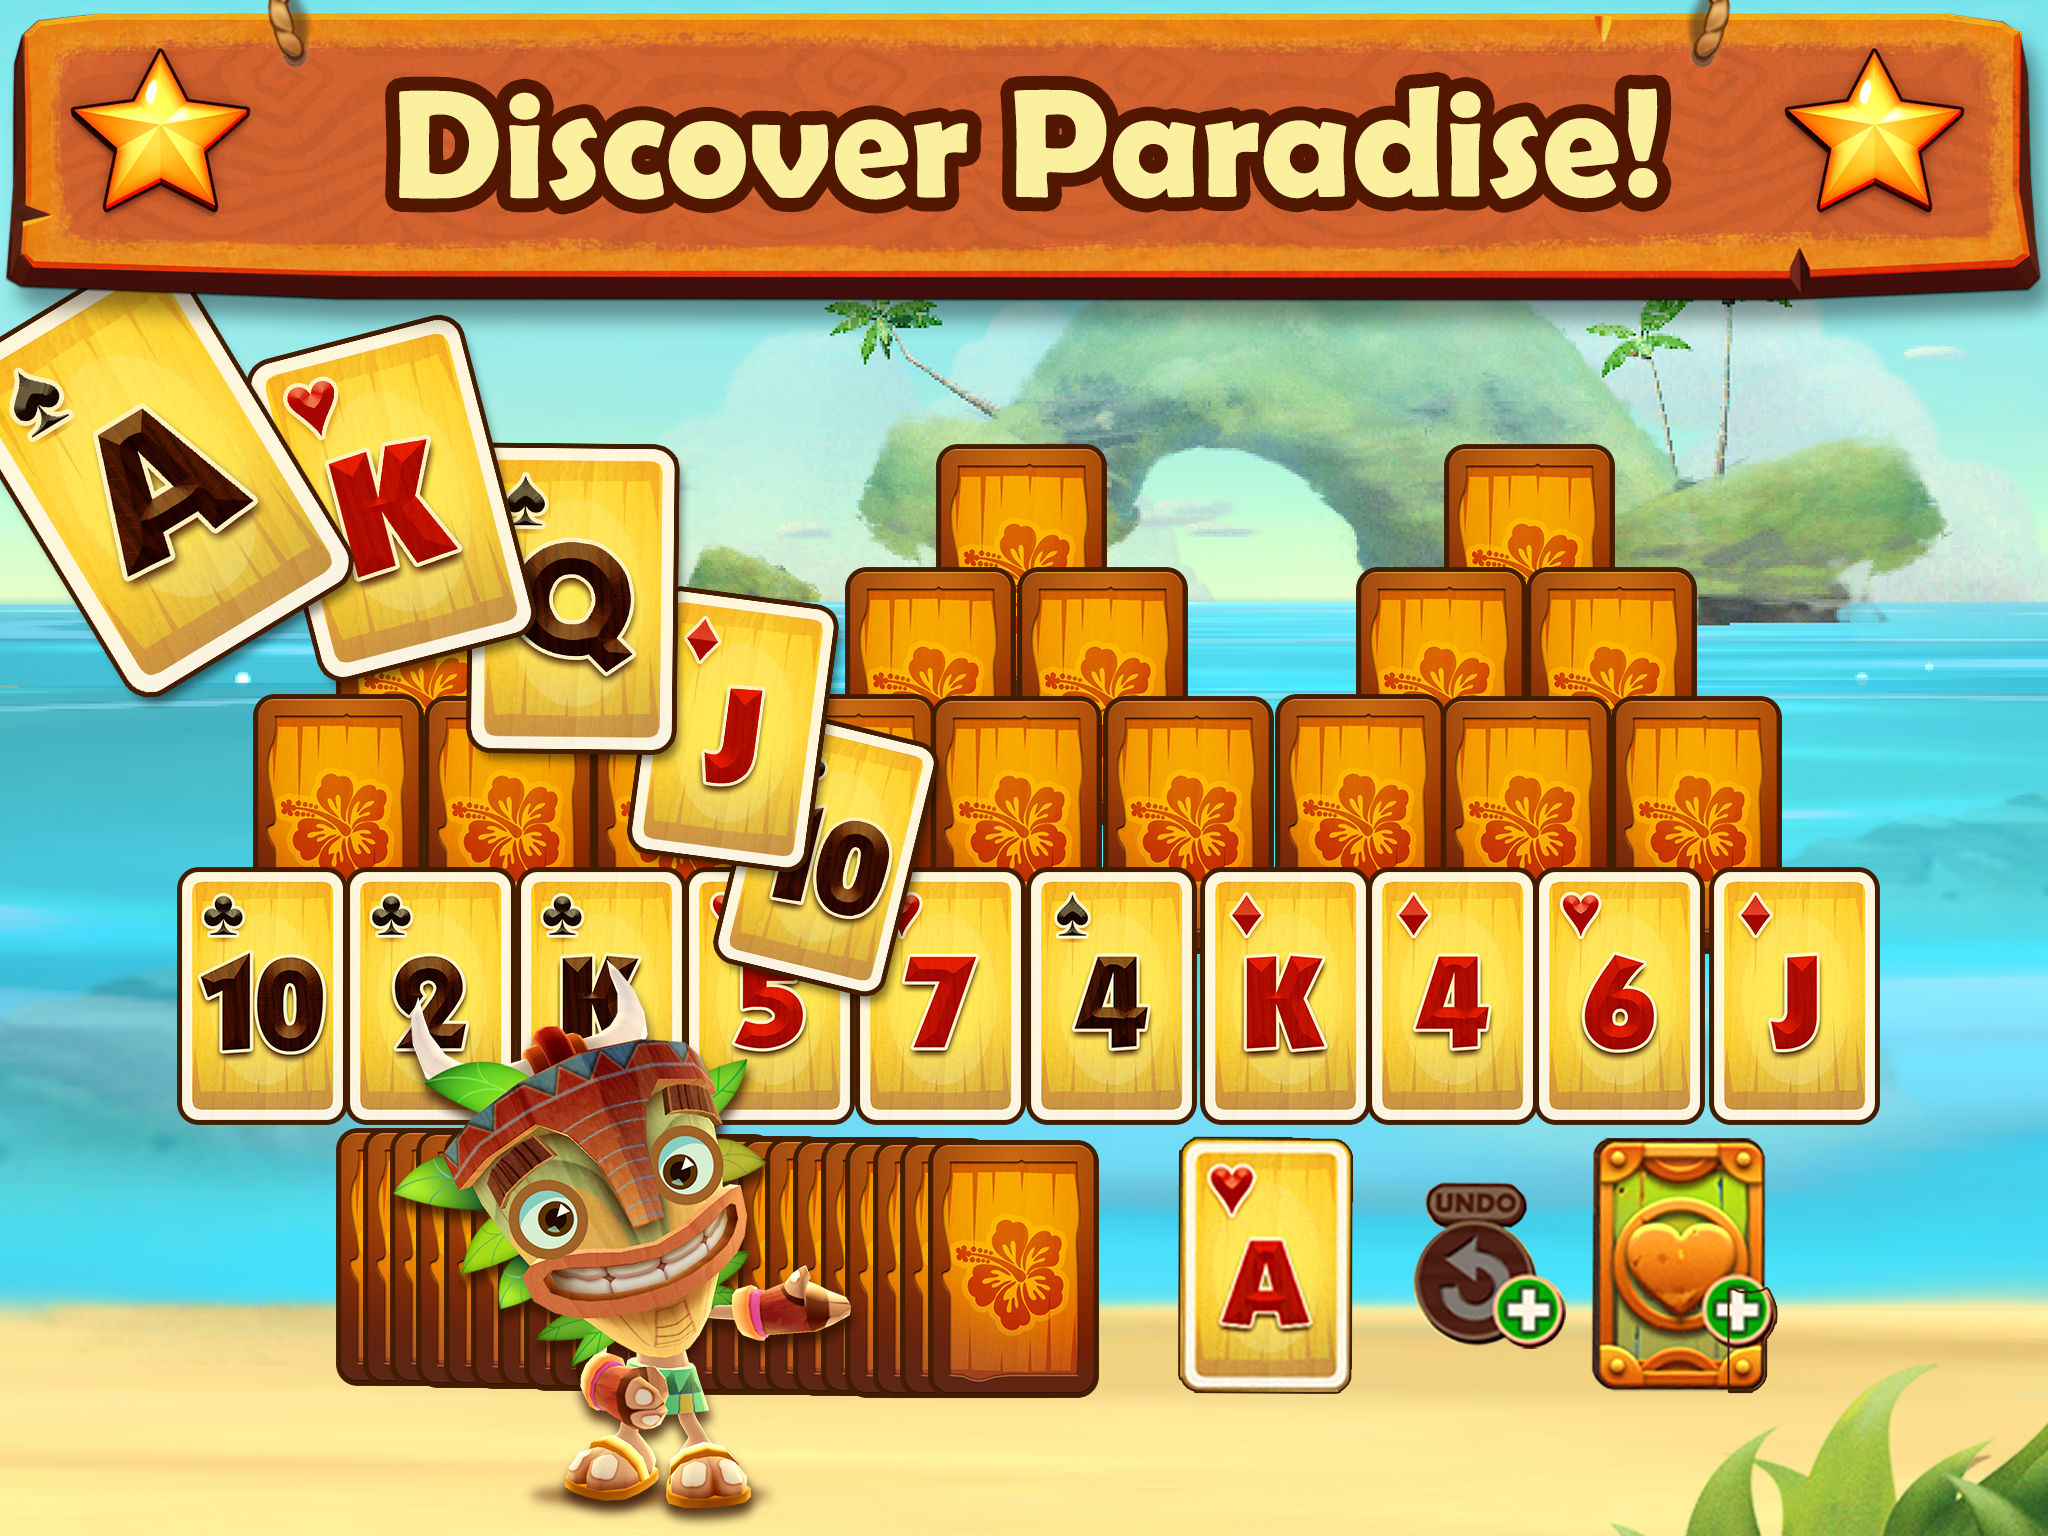 App Description. Play in paradise with Solitaire TriPeaks, the number 1  online card game.